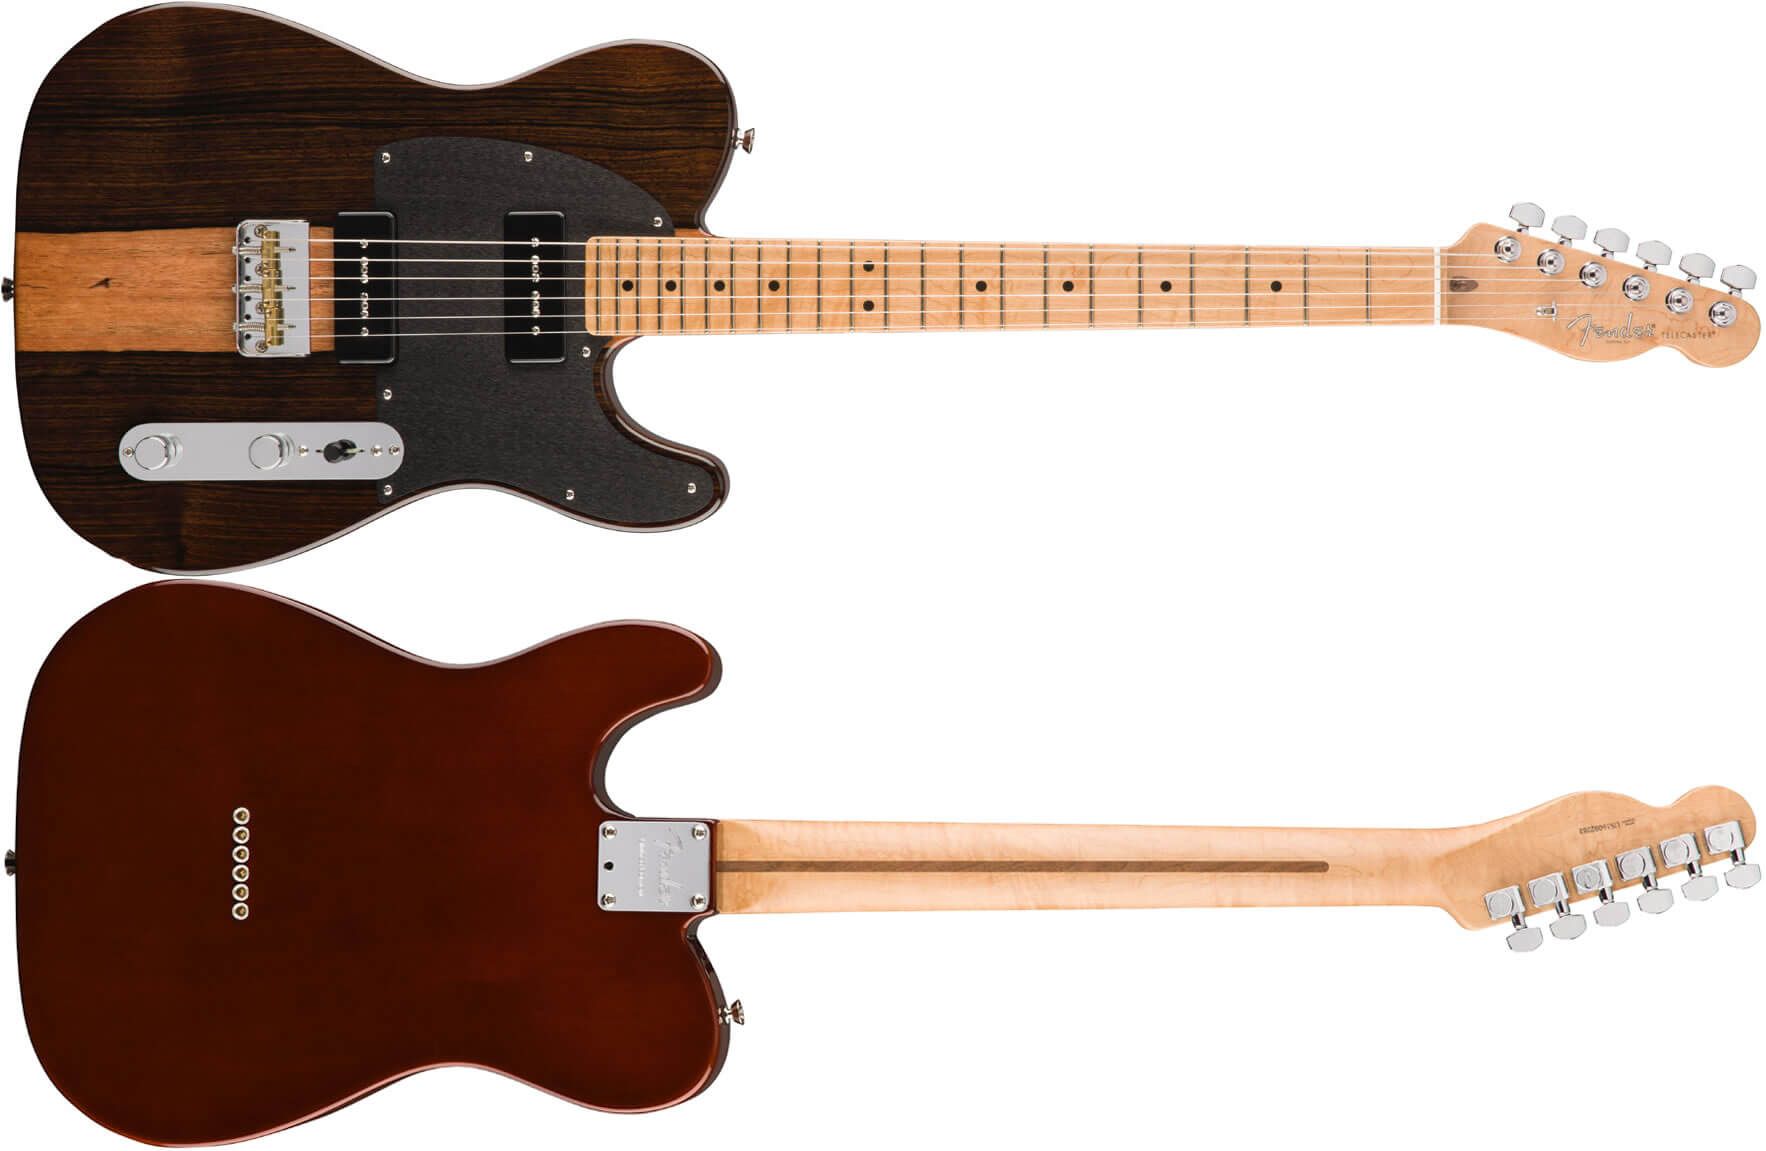 2017 LIMITED EDITION MALAYSIAN BLACKWOOD TELECASTER 90